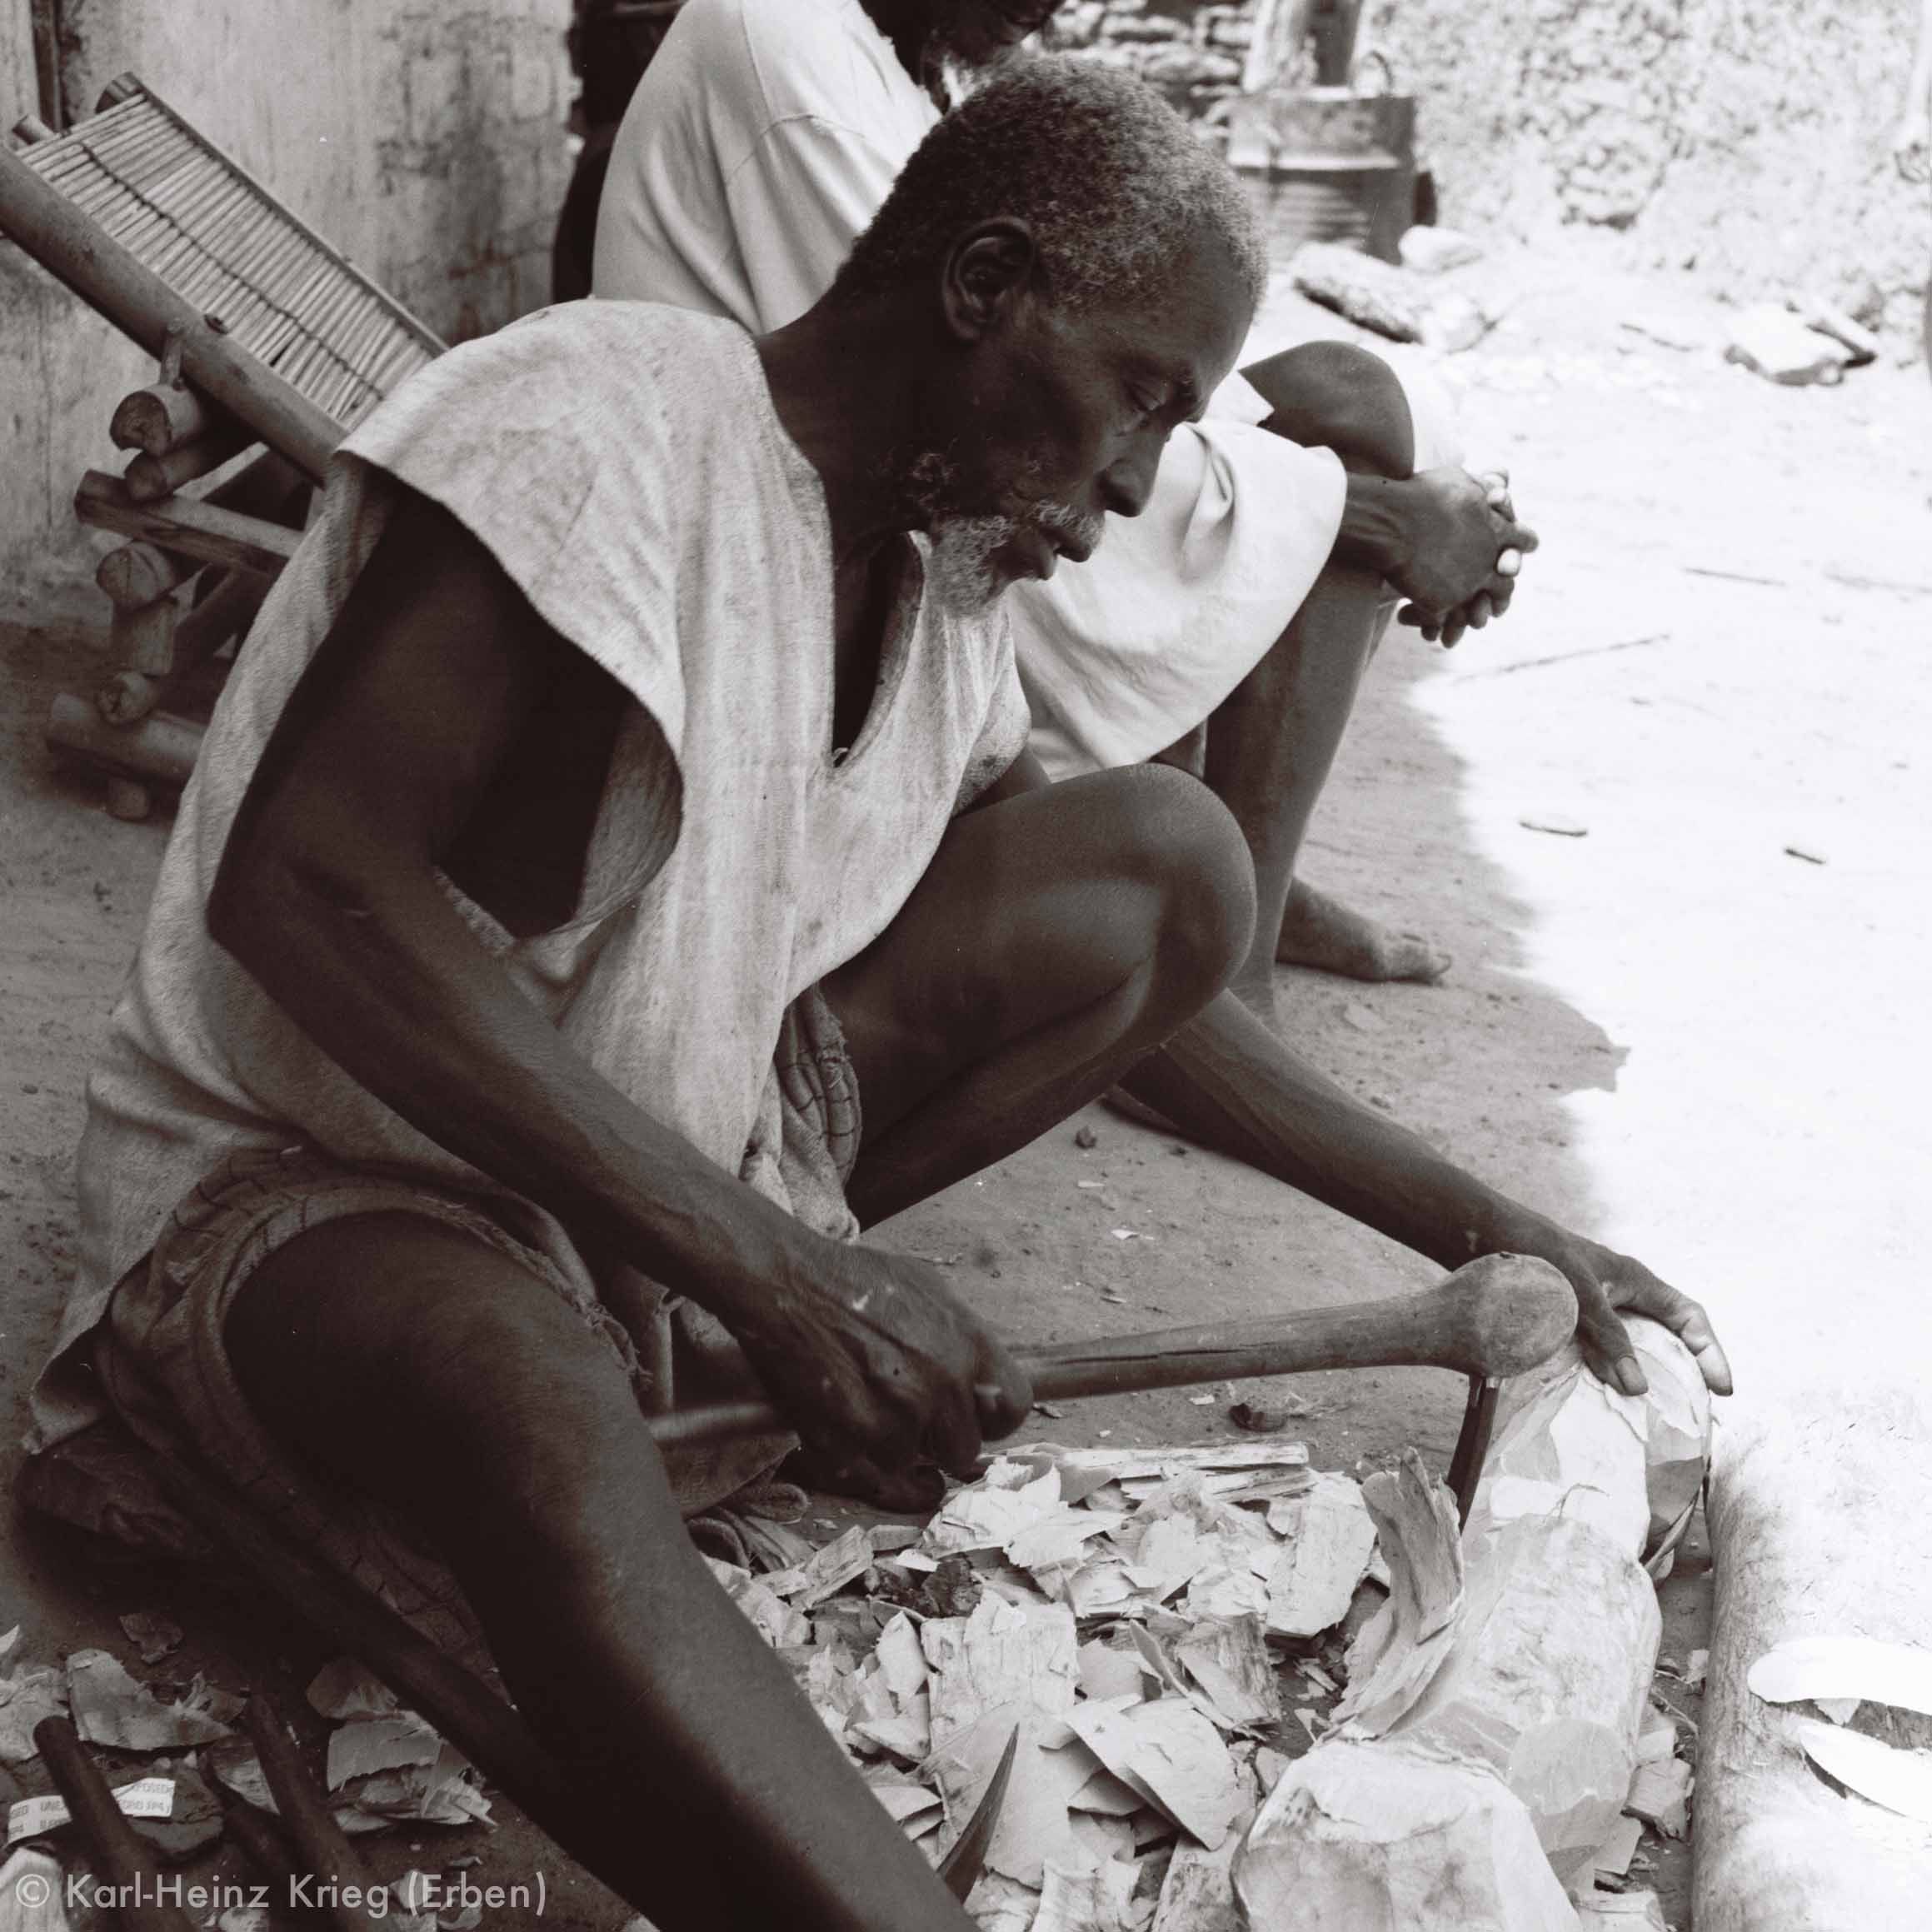 Ynadjo Koné carving in his workplace. Photo: Karl-Heinz Krieg, Kolia (Region of Boundiali, Côte d'Ivoire), 1977